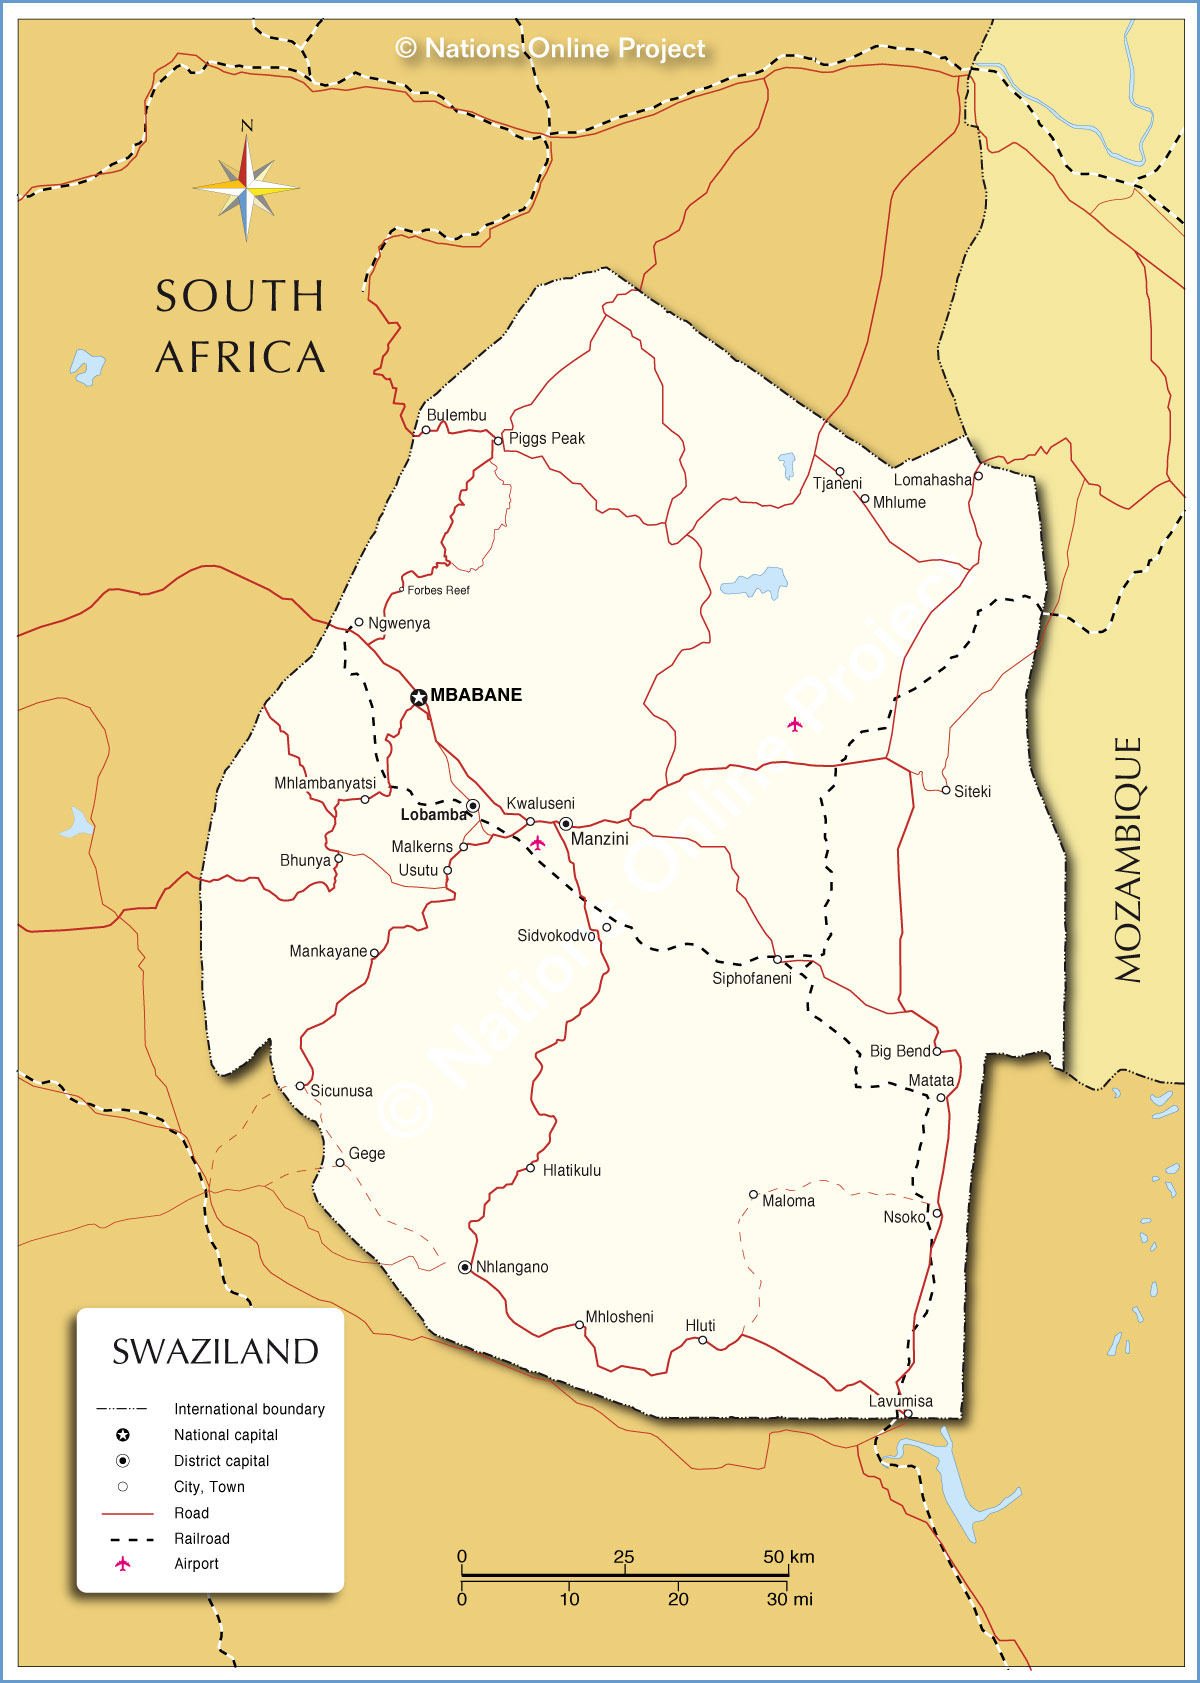 Political Map of Swaziland Nations Online Project